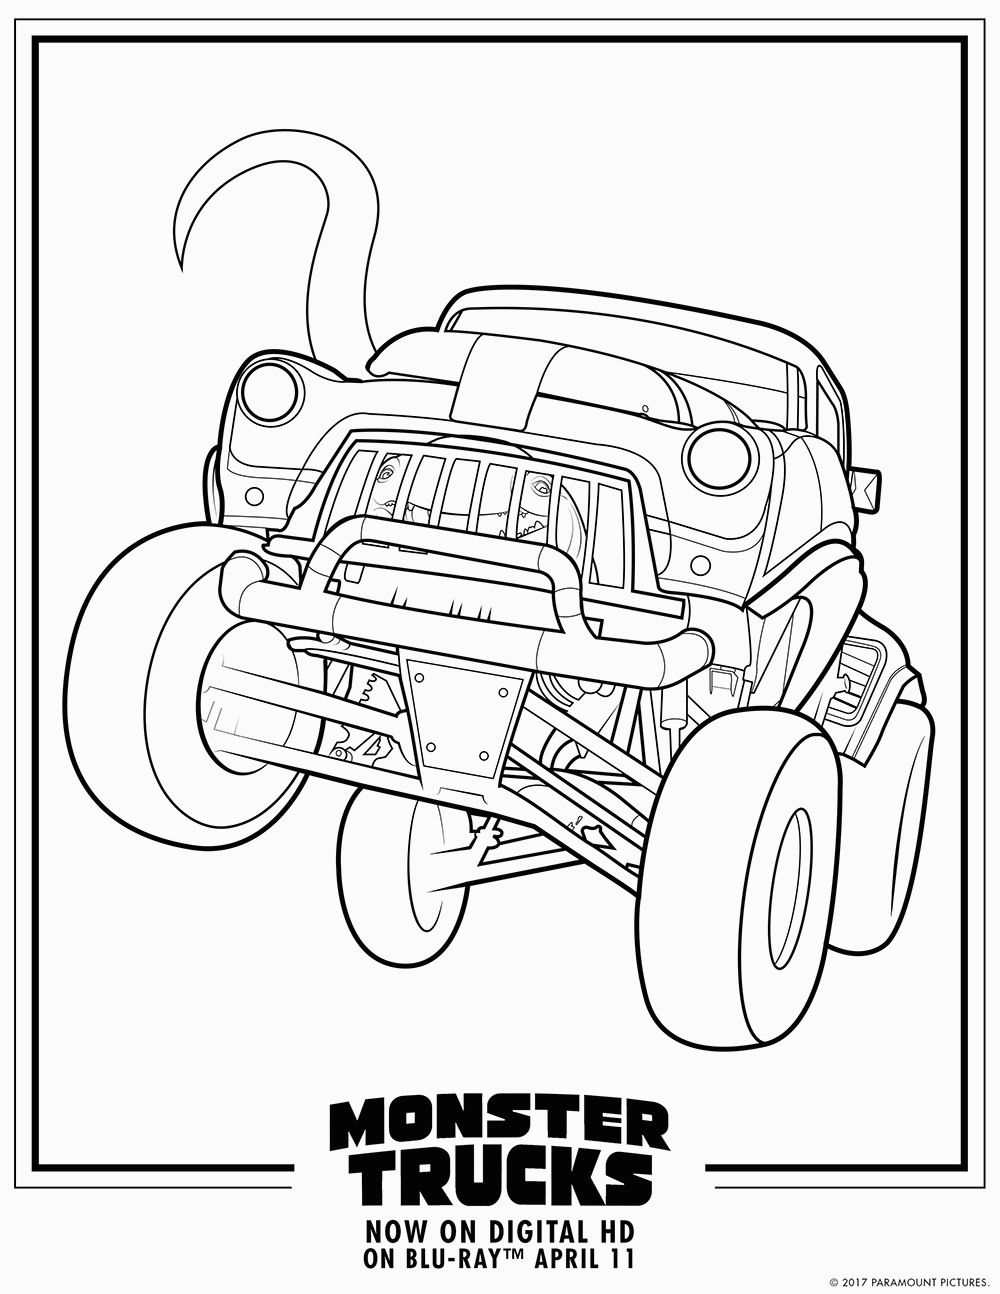 Coloring Page For Kids Coloring Book Monster Truck Pages Photo